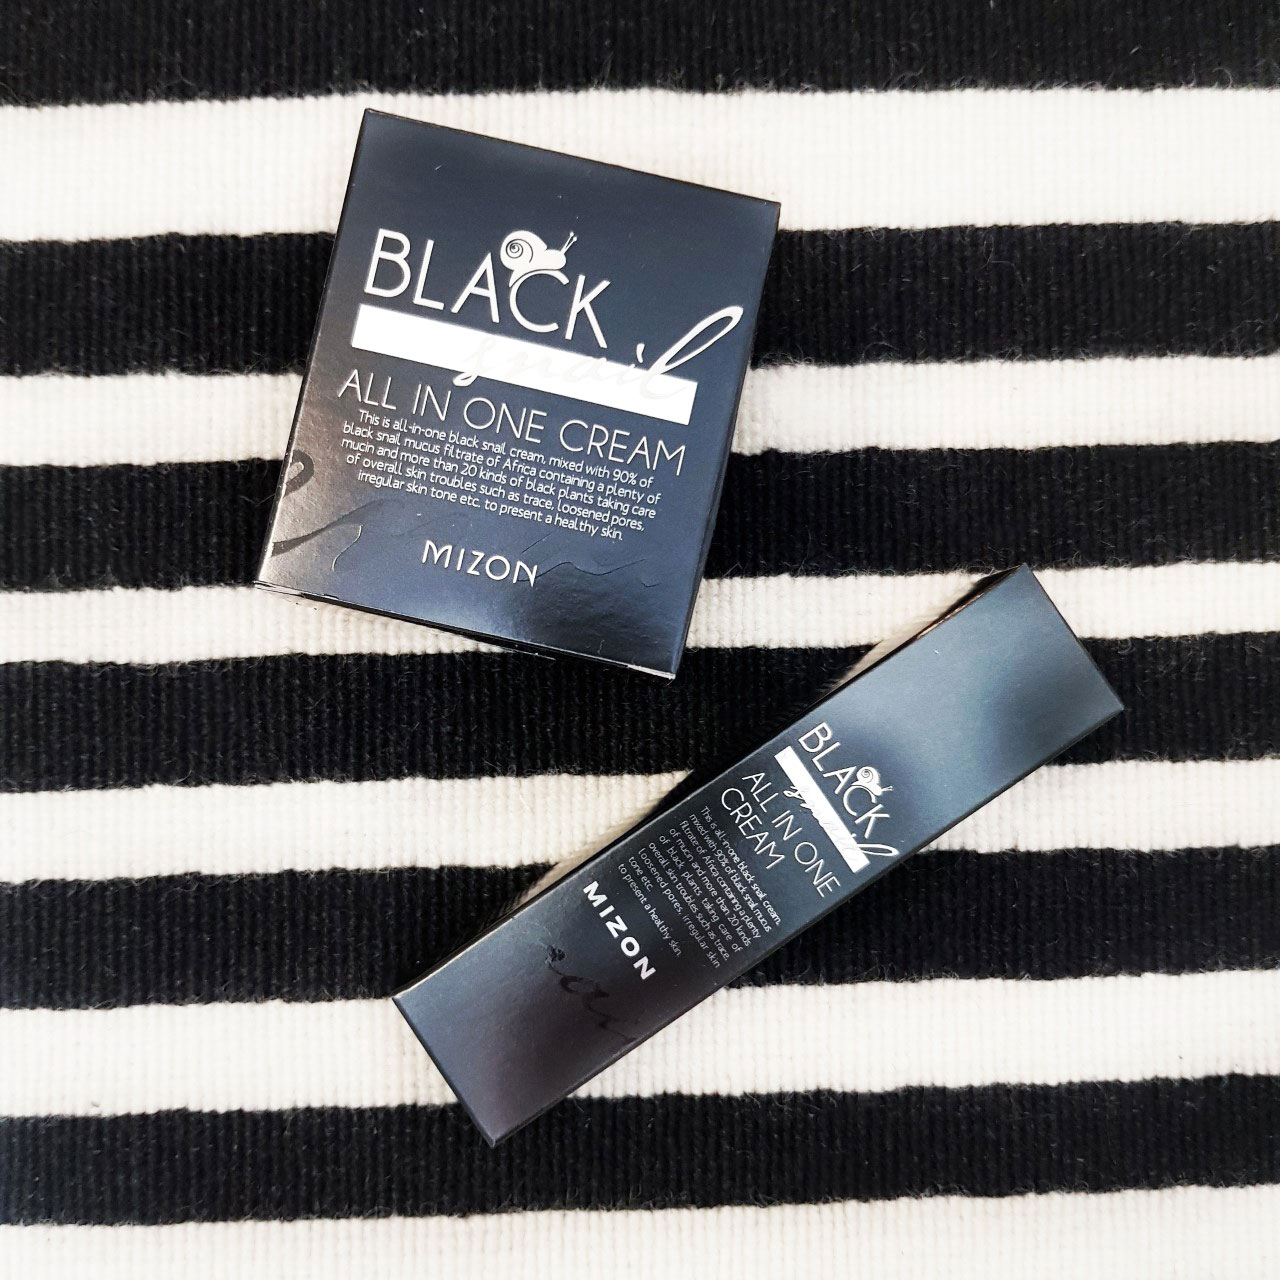 Black Snail All In One Cream 75ml ja 35ml